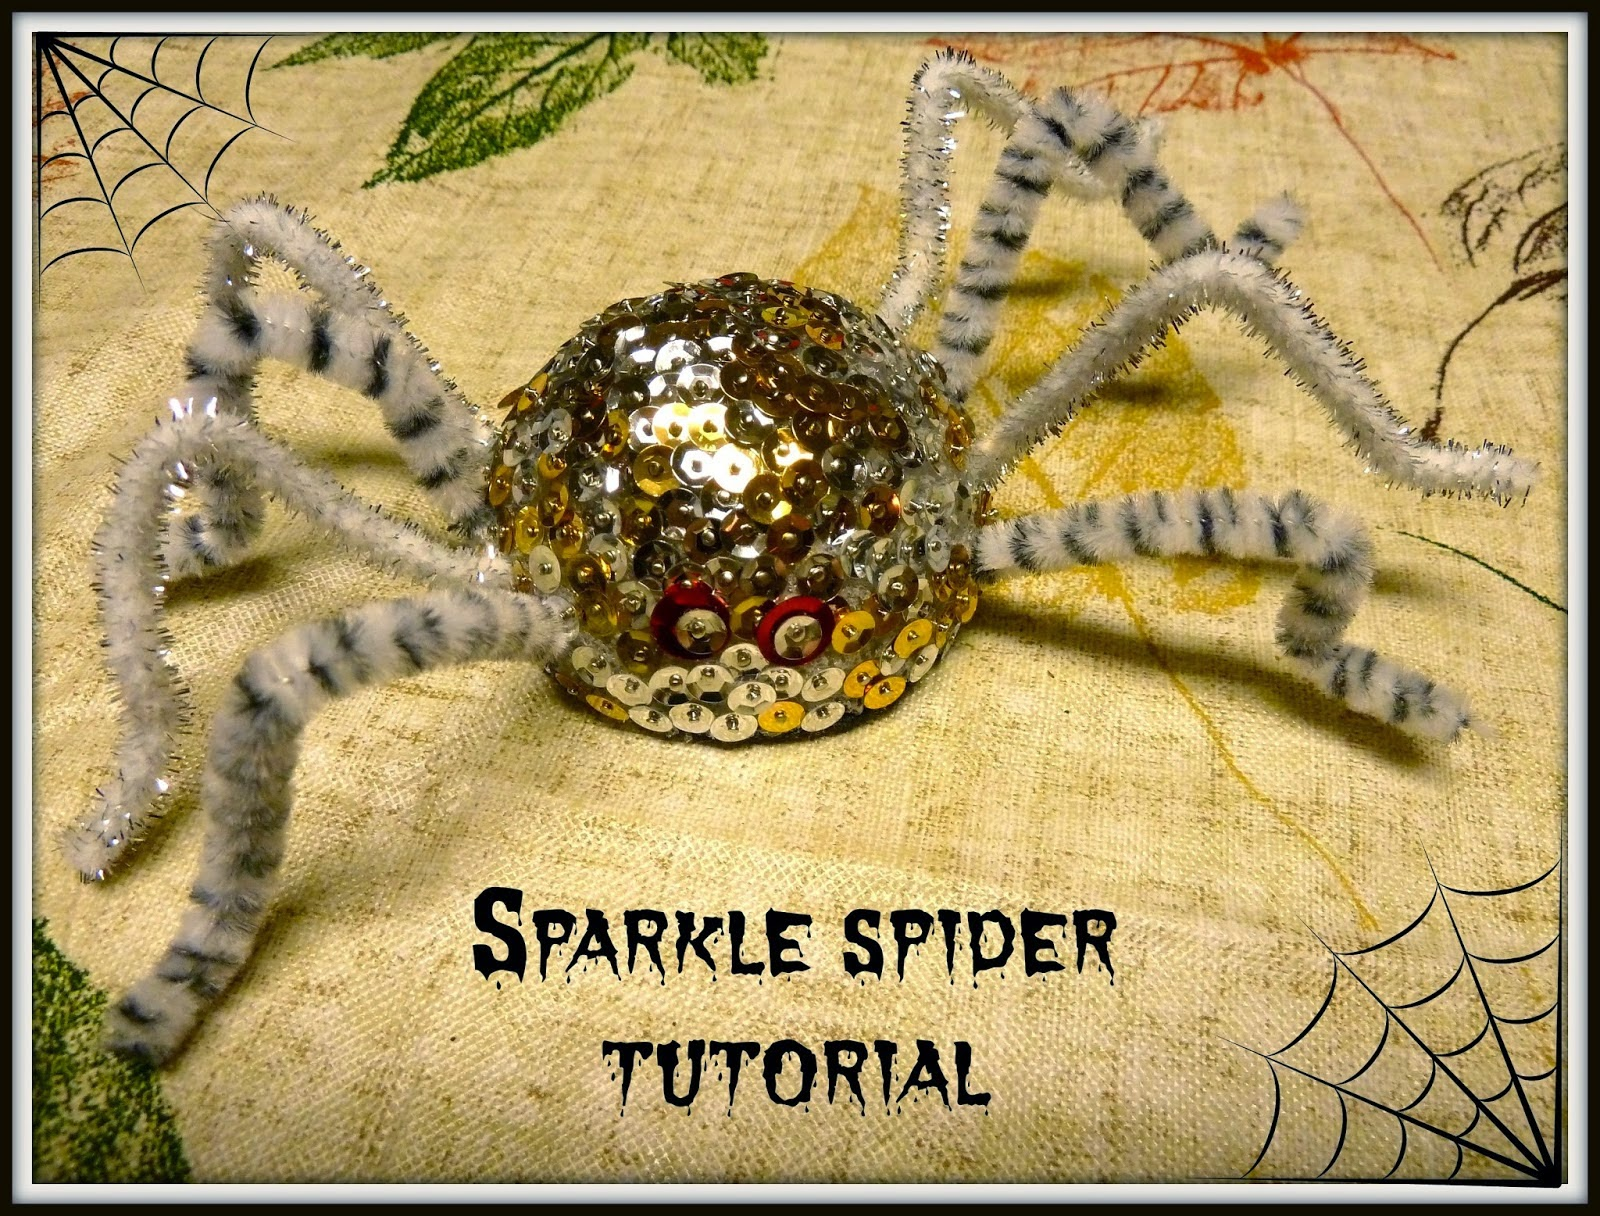 http://www.makeiteasycrafts.com/2014/09/sparkle-spider-tutorial.html